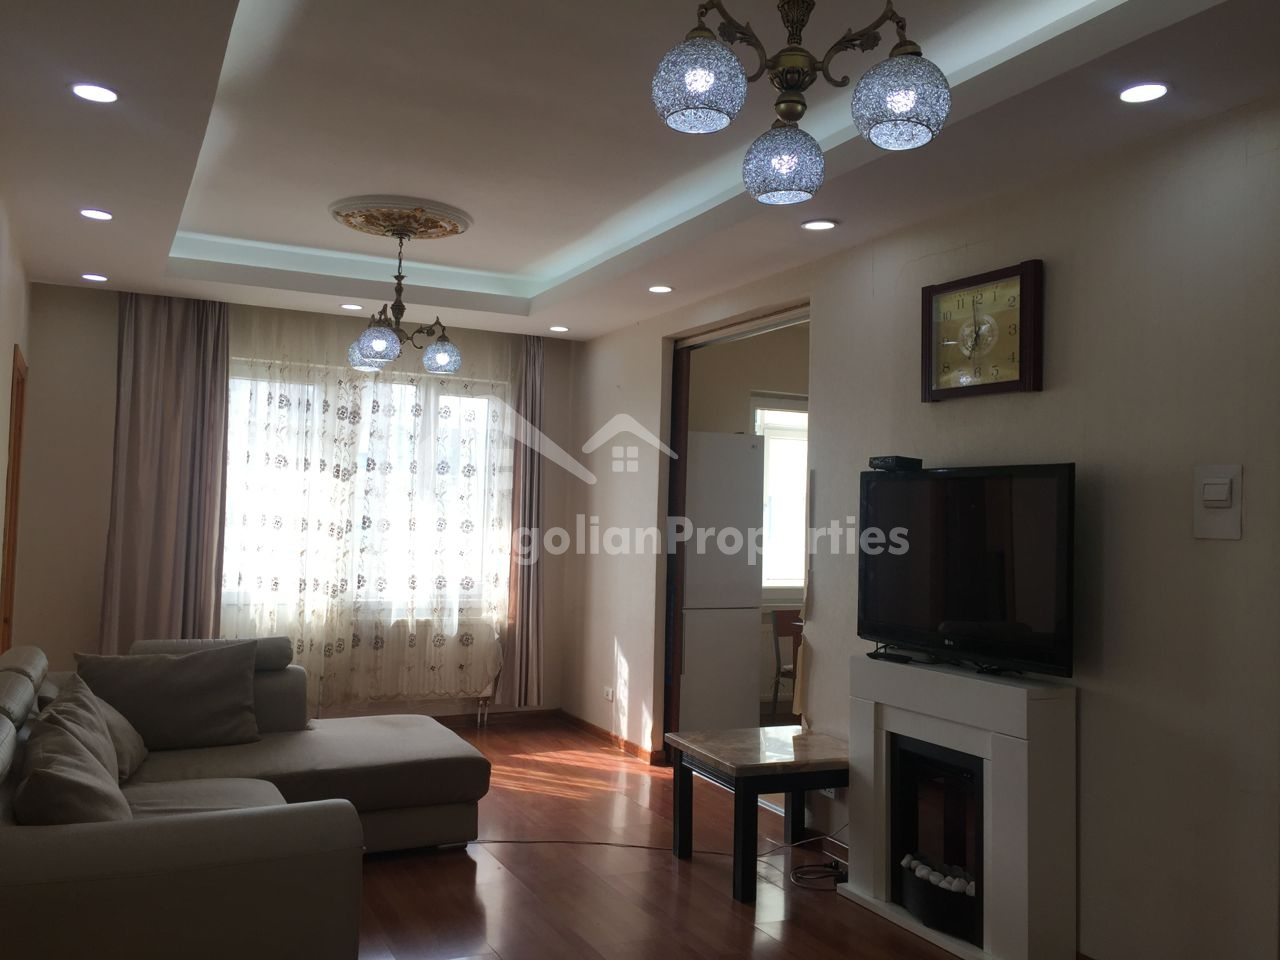 Great View, Cozy 3 bedroom apartment is for rent in Golomt tower